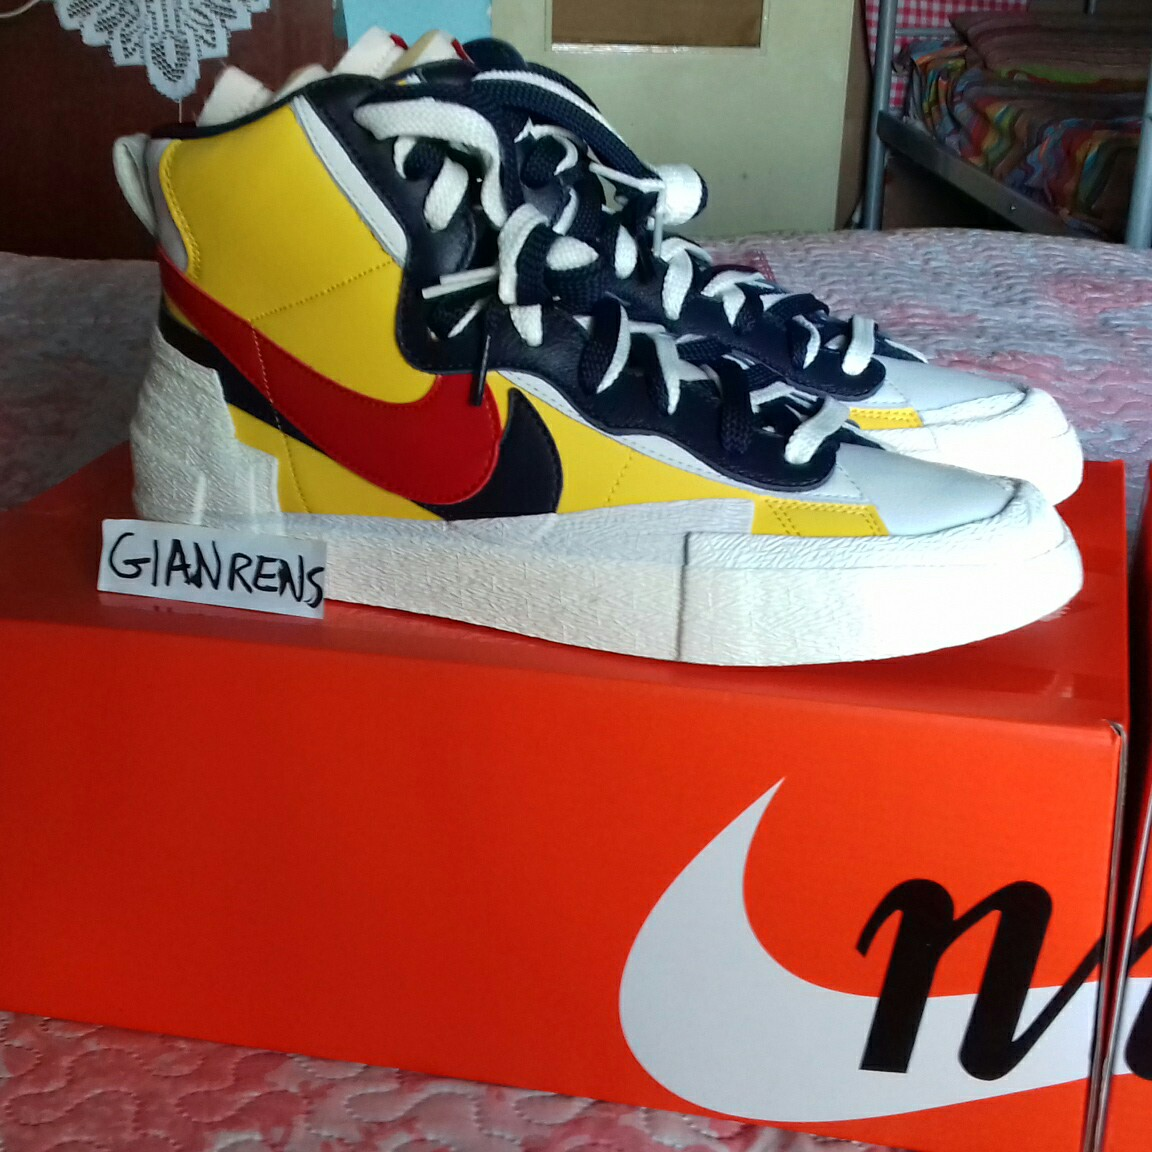 meet 45ec4 c9cf1 Nike Blazer High sacai Snow Beach Price💸: 250€ meet... - Depop